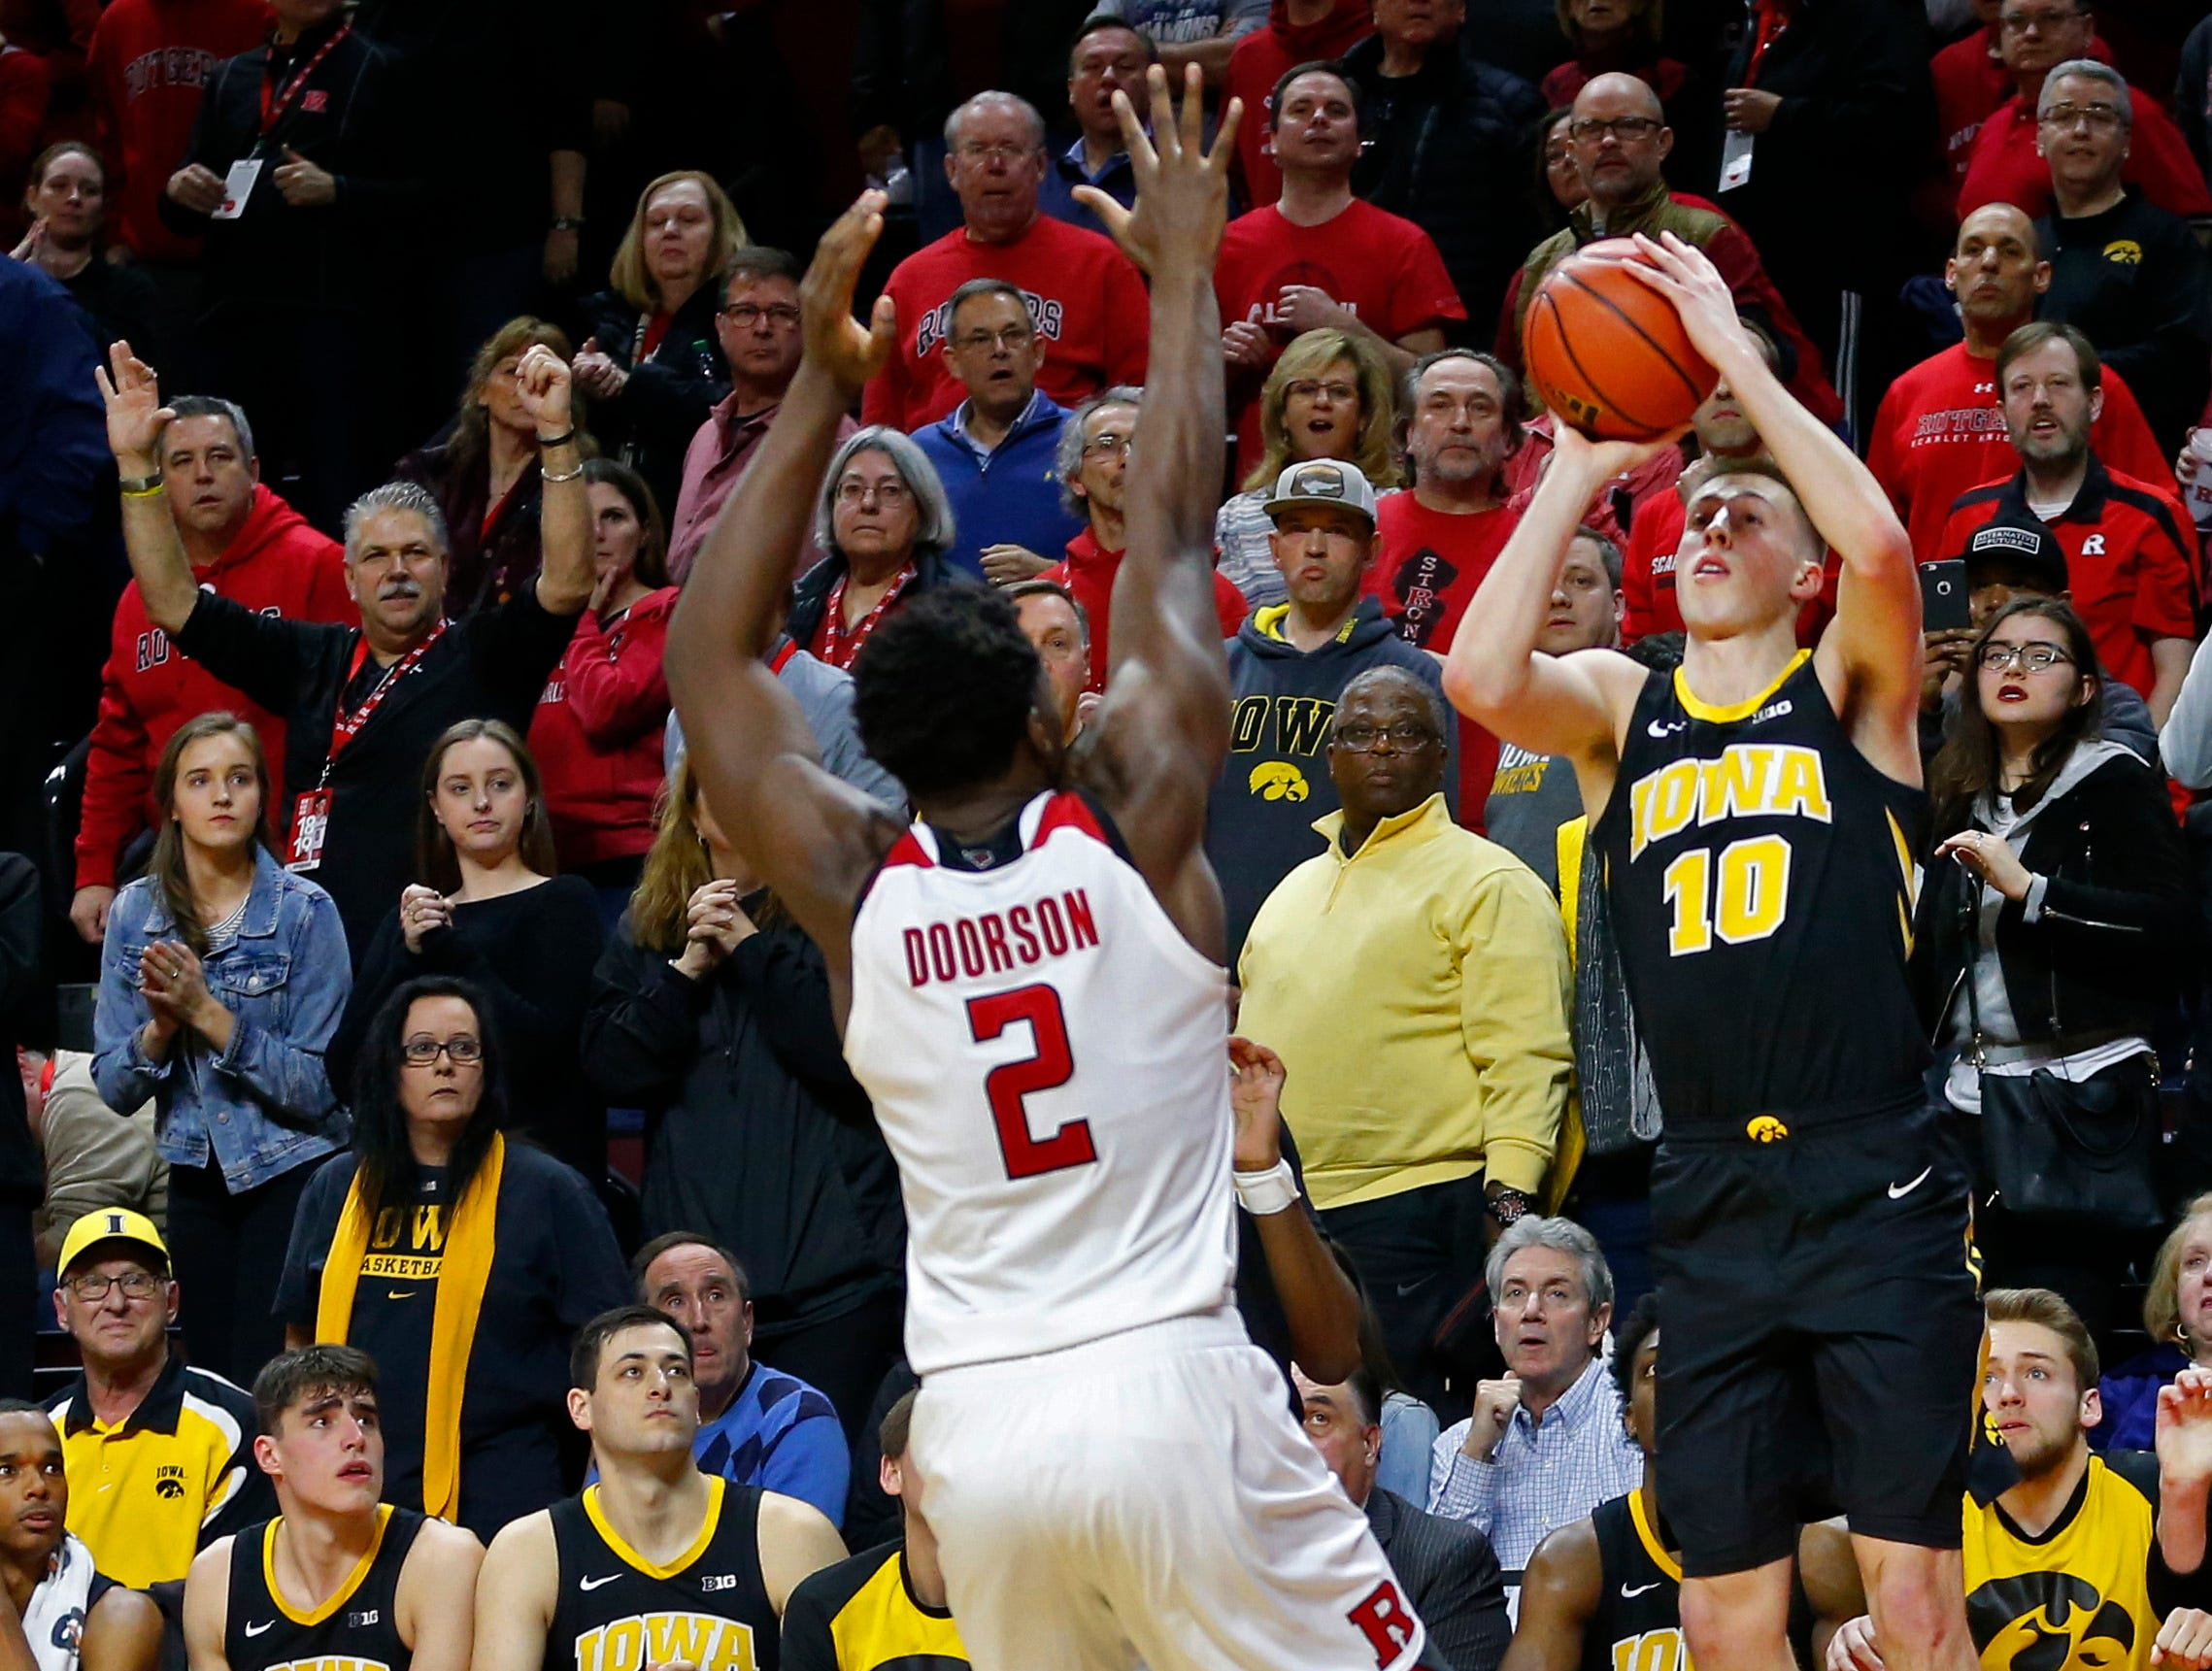 Iowa Hawkeyes guard Joe Wieskamp (10) makes the game winning basket against Rutgers Scarlet Knights center Shaquille Doorson (2) during the second half at Rutgers Athletic Center (RAC). Mandatory Credit: Noah K. Murray-USA TODAY Sports